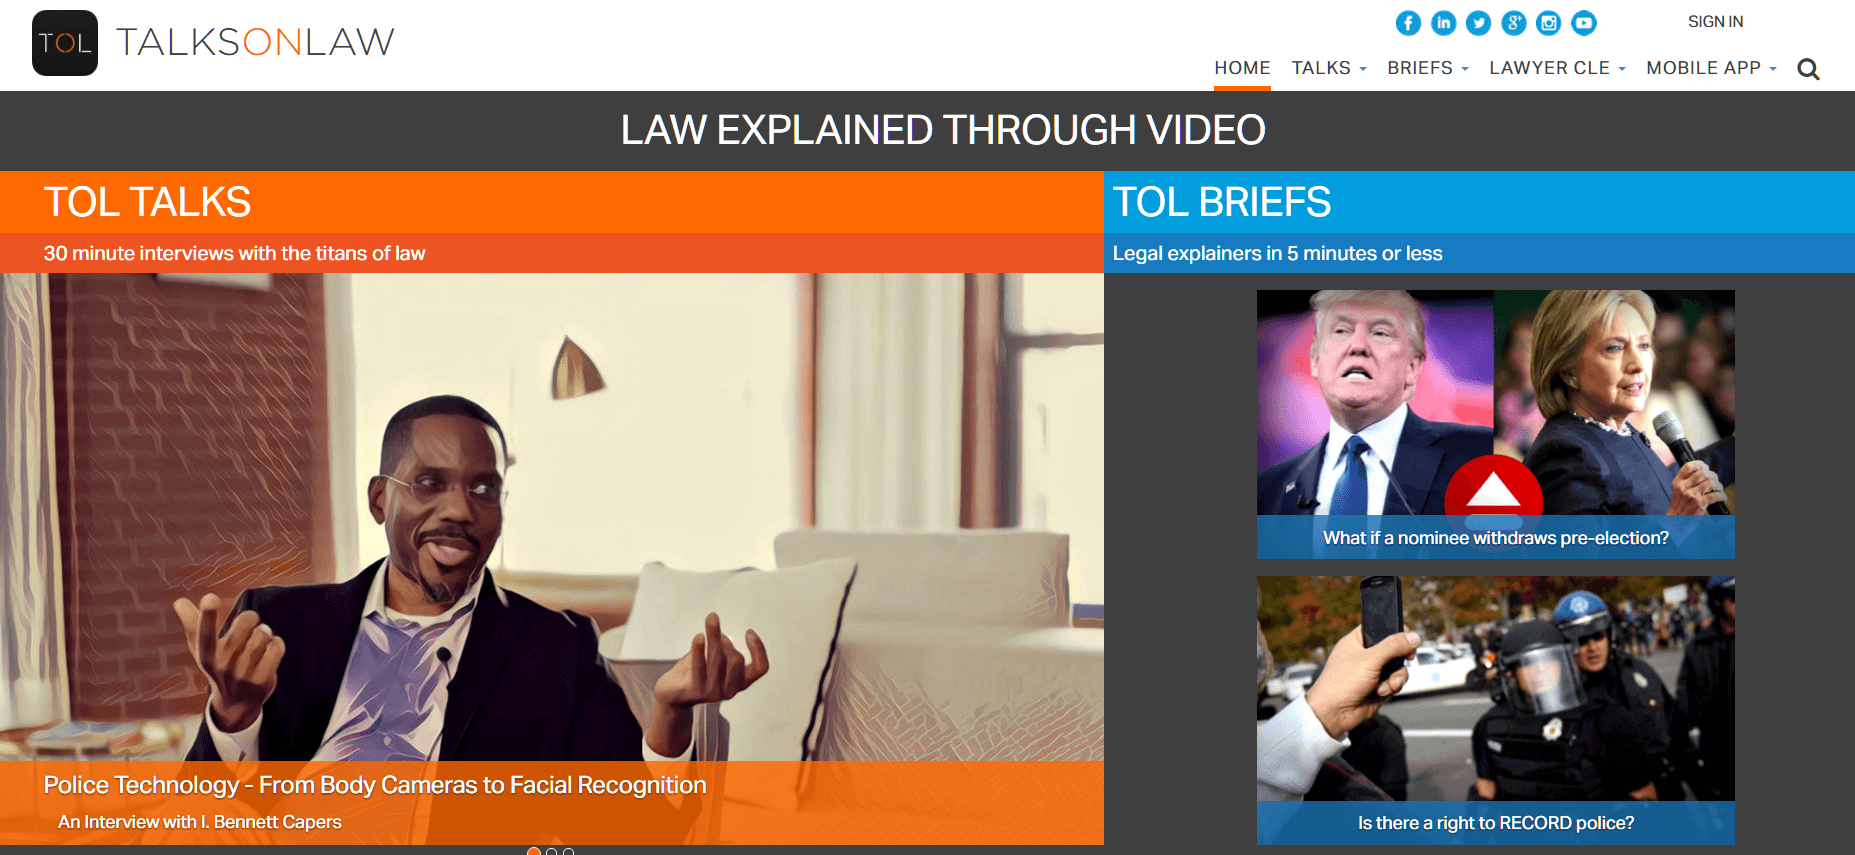 proffecional network for lawers